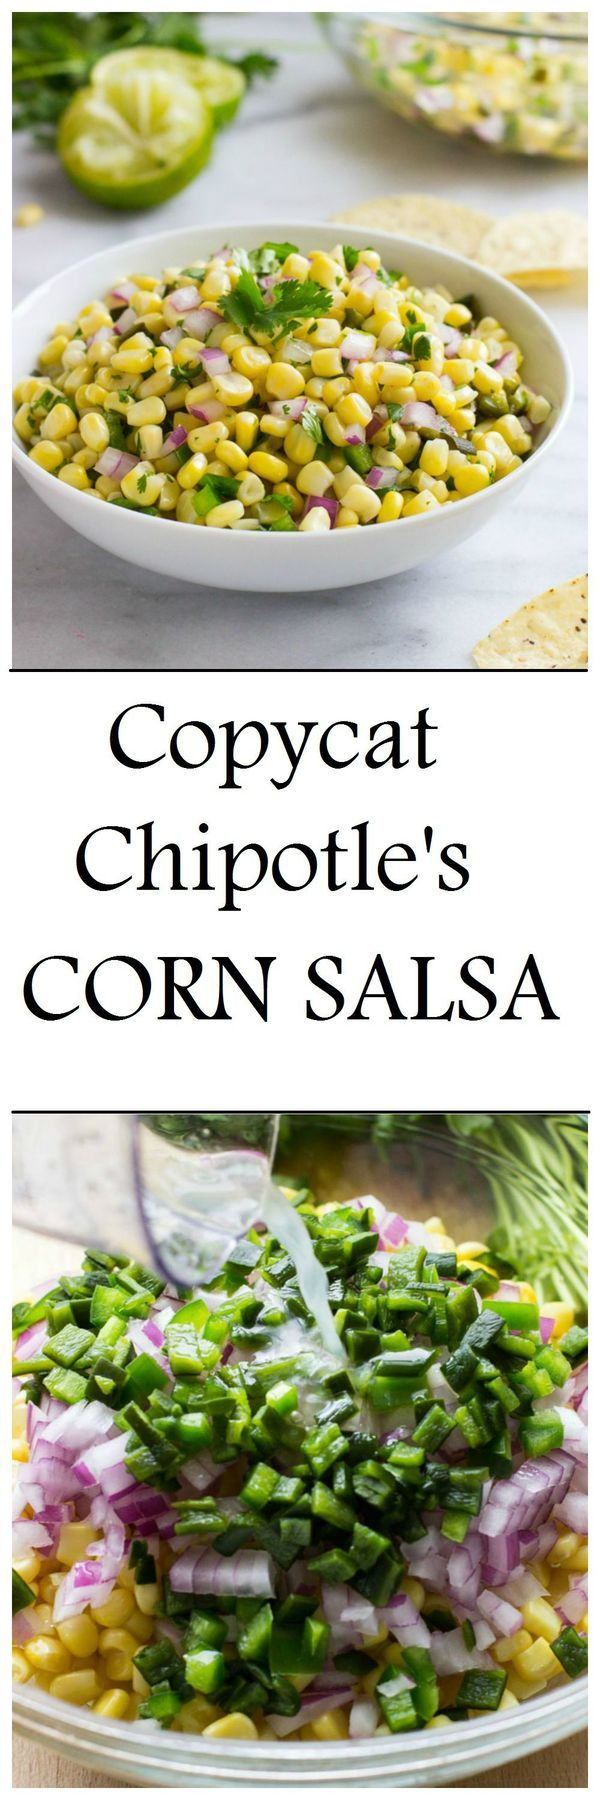 Copycat Chipotle's Corn Salsa- two key ingredients give this salsa it's irresistible flavor!